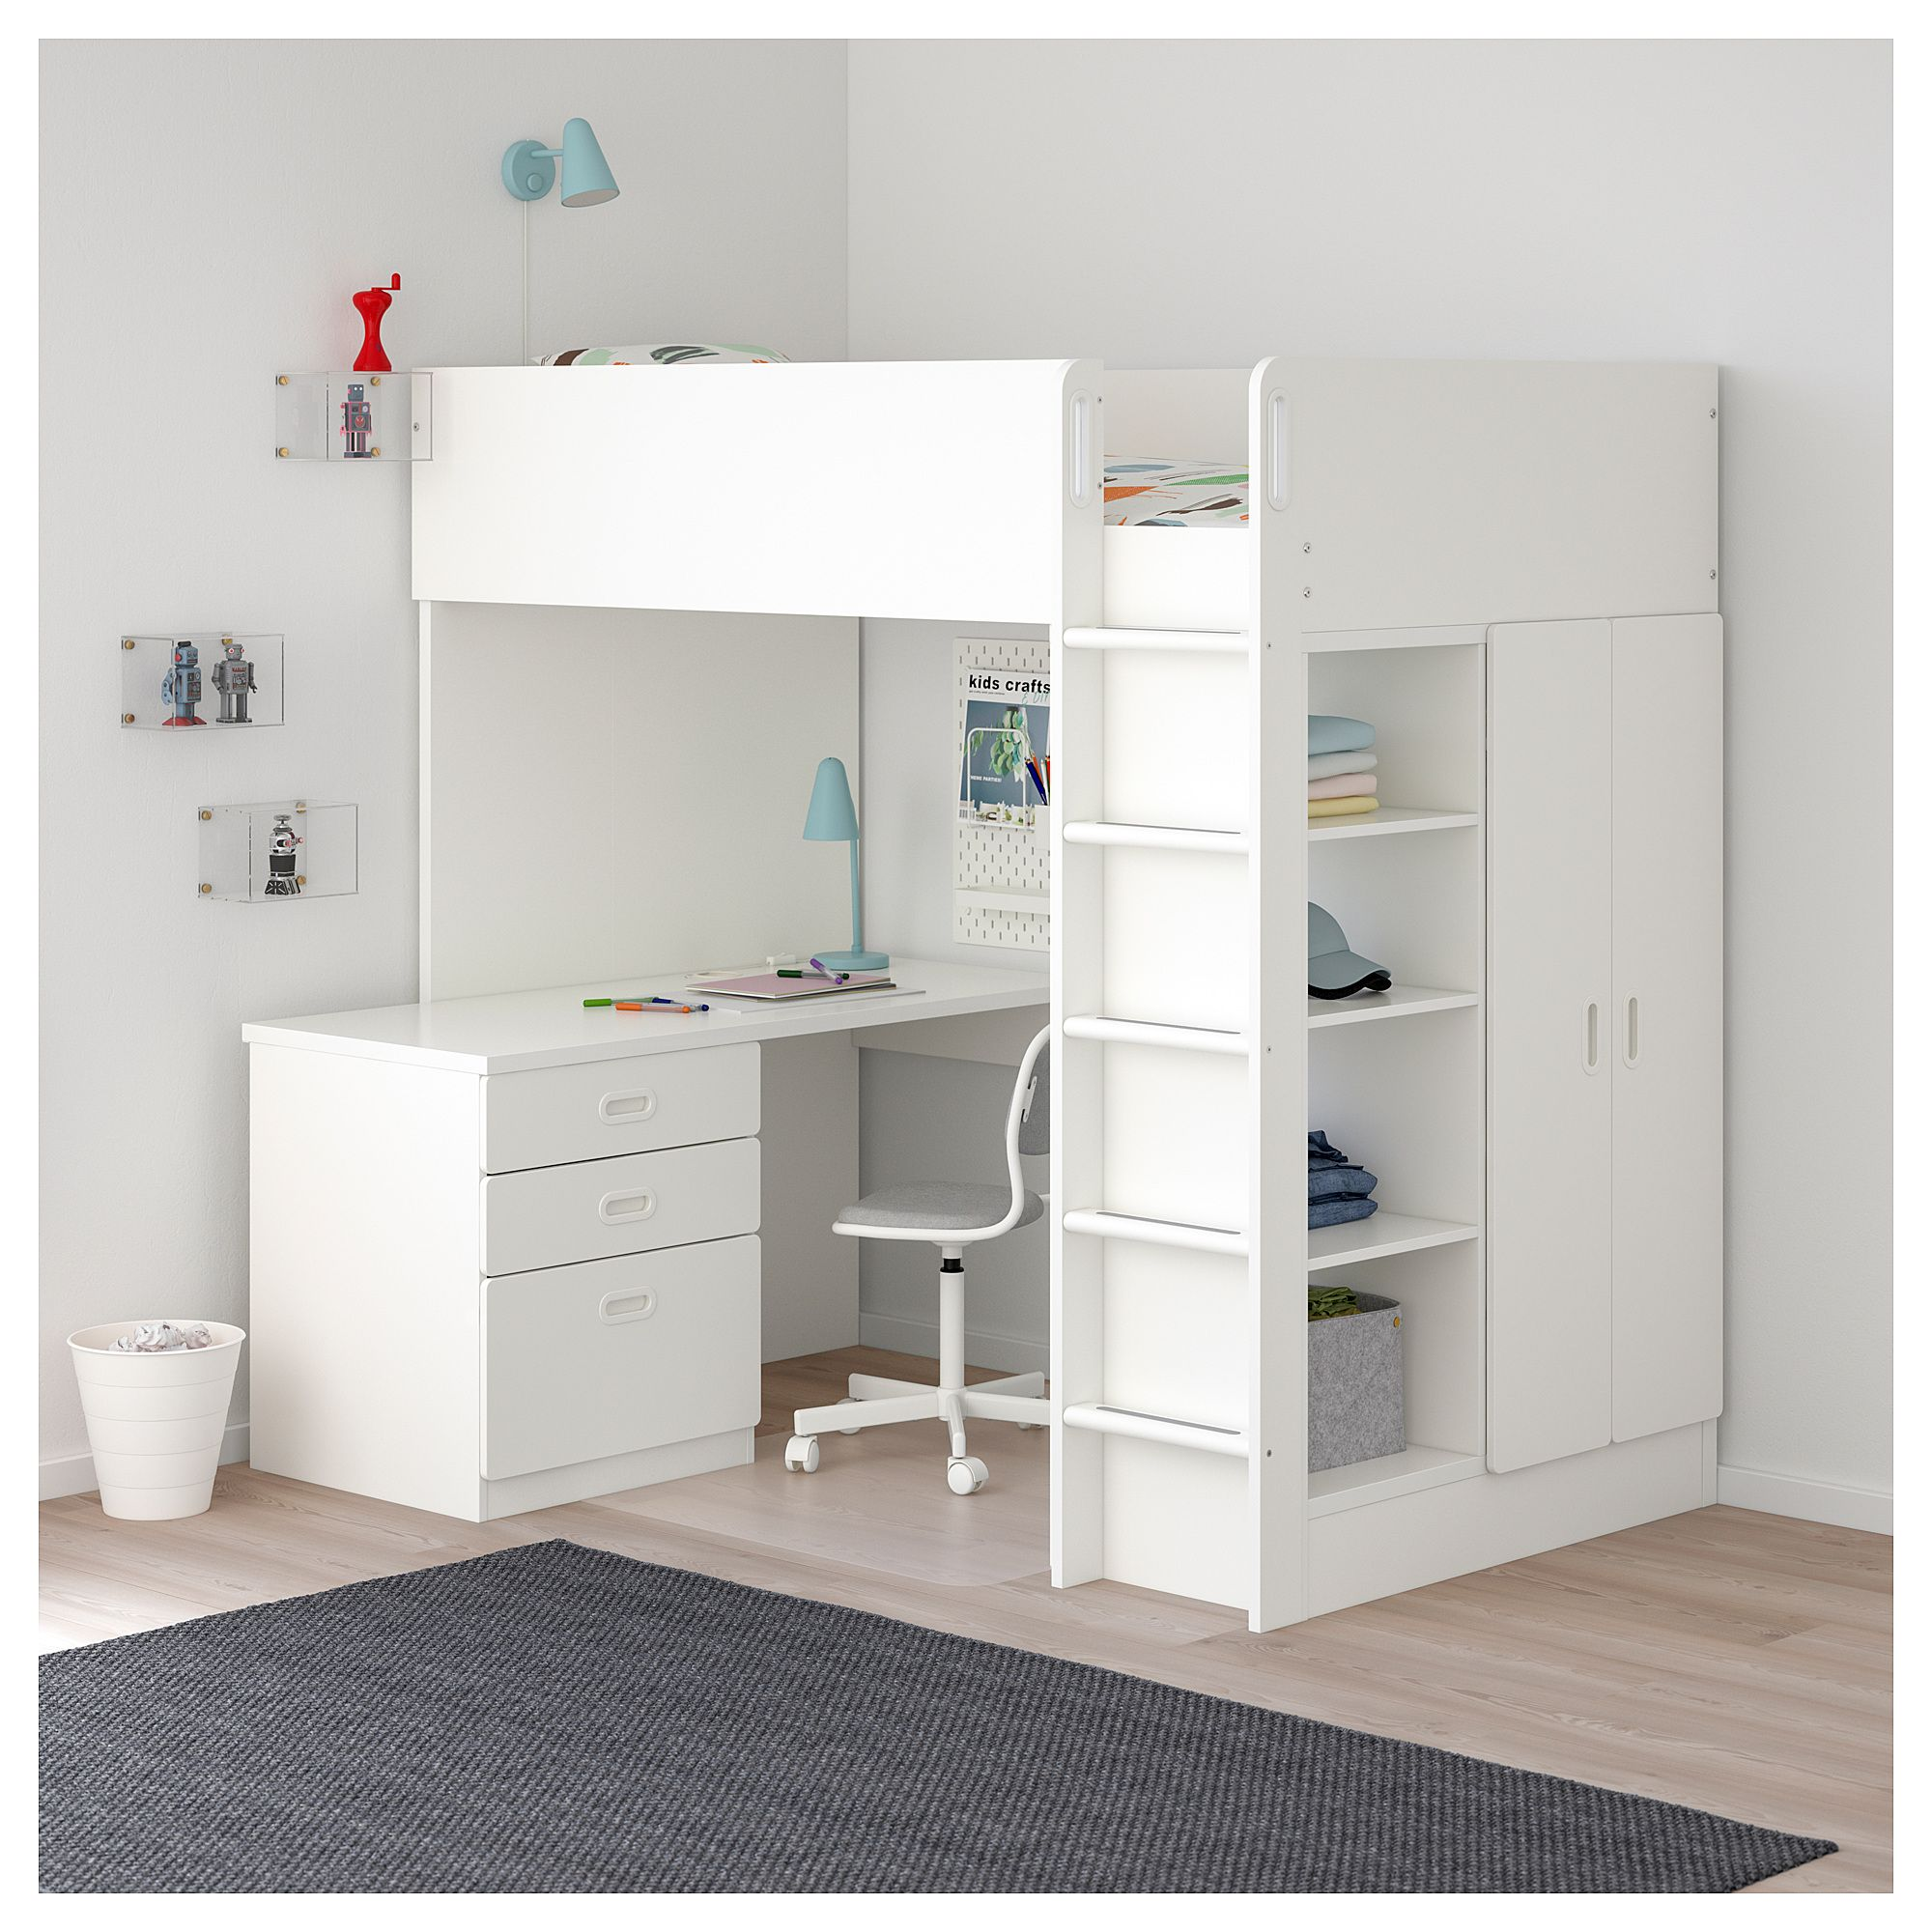 Ikea Stuva Fritids Loft Bed With 3 Drawers 2 Doors White